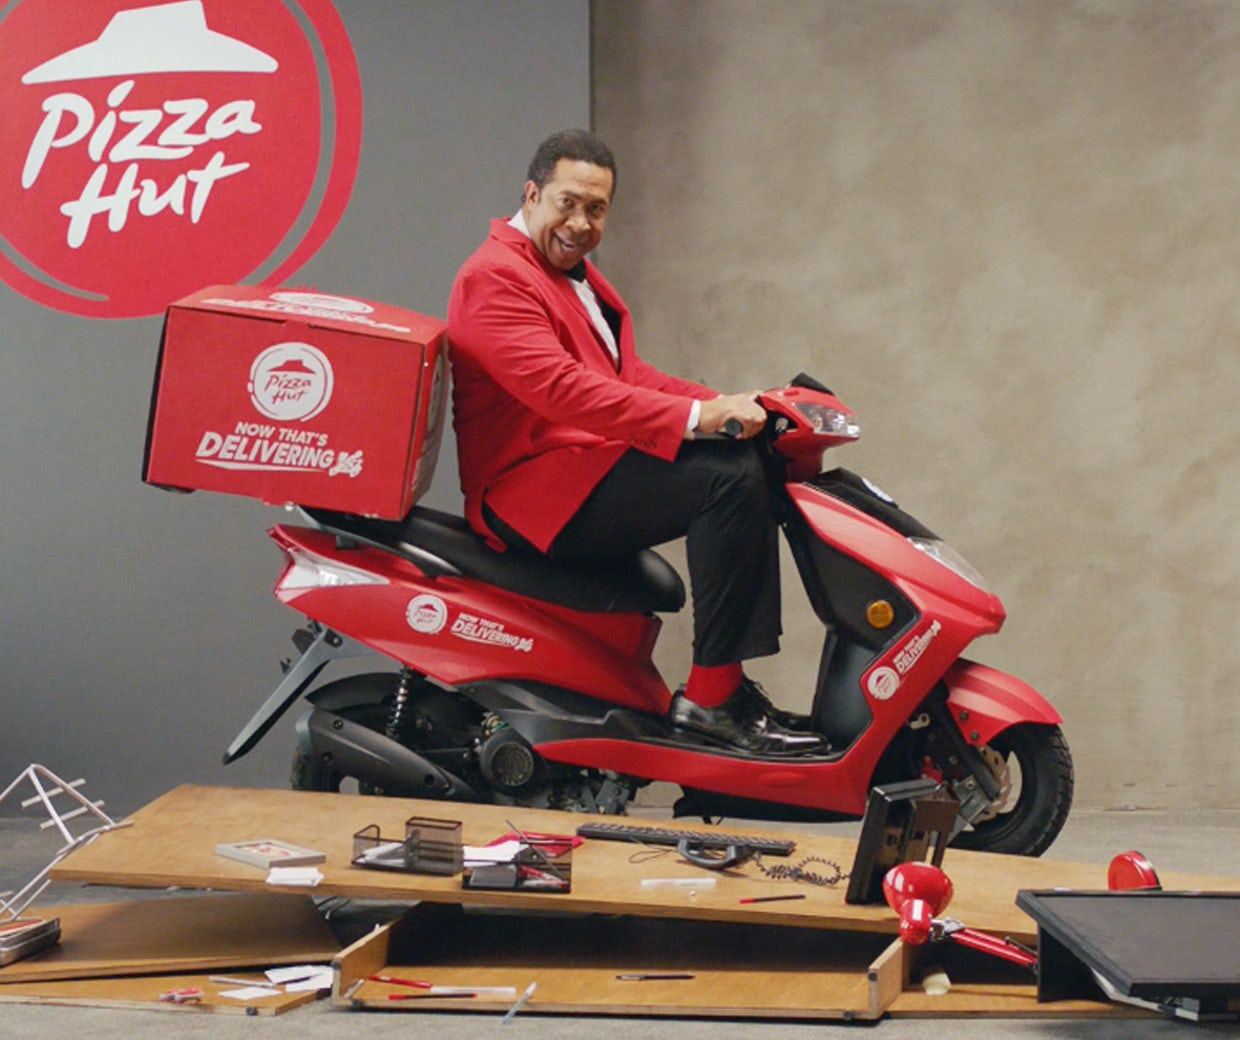 Cruz Auto Sales >> Pizza Hut looks to own the pizza delivery space and 'have some fun' as it takes swipe at rival ...